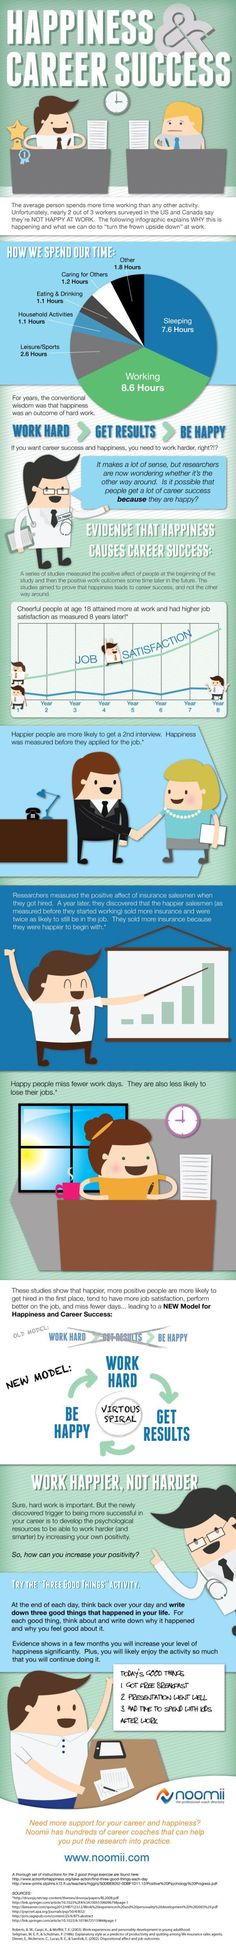 Want a Great Career? Work Happier, Not Harder [#Infographic] #careers